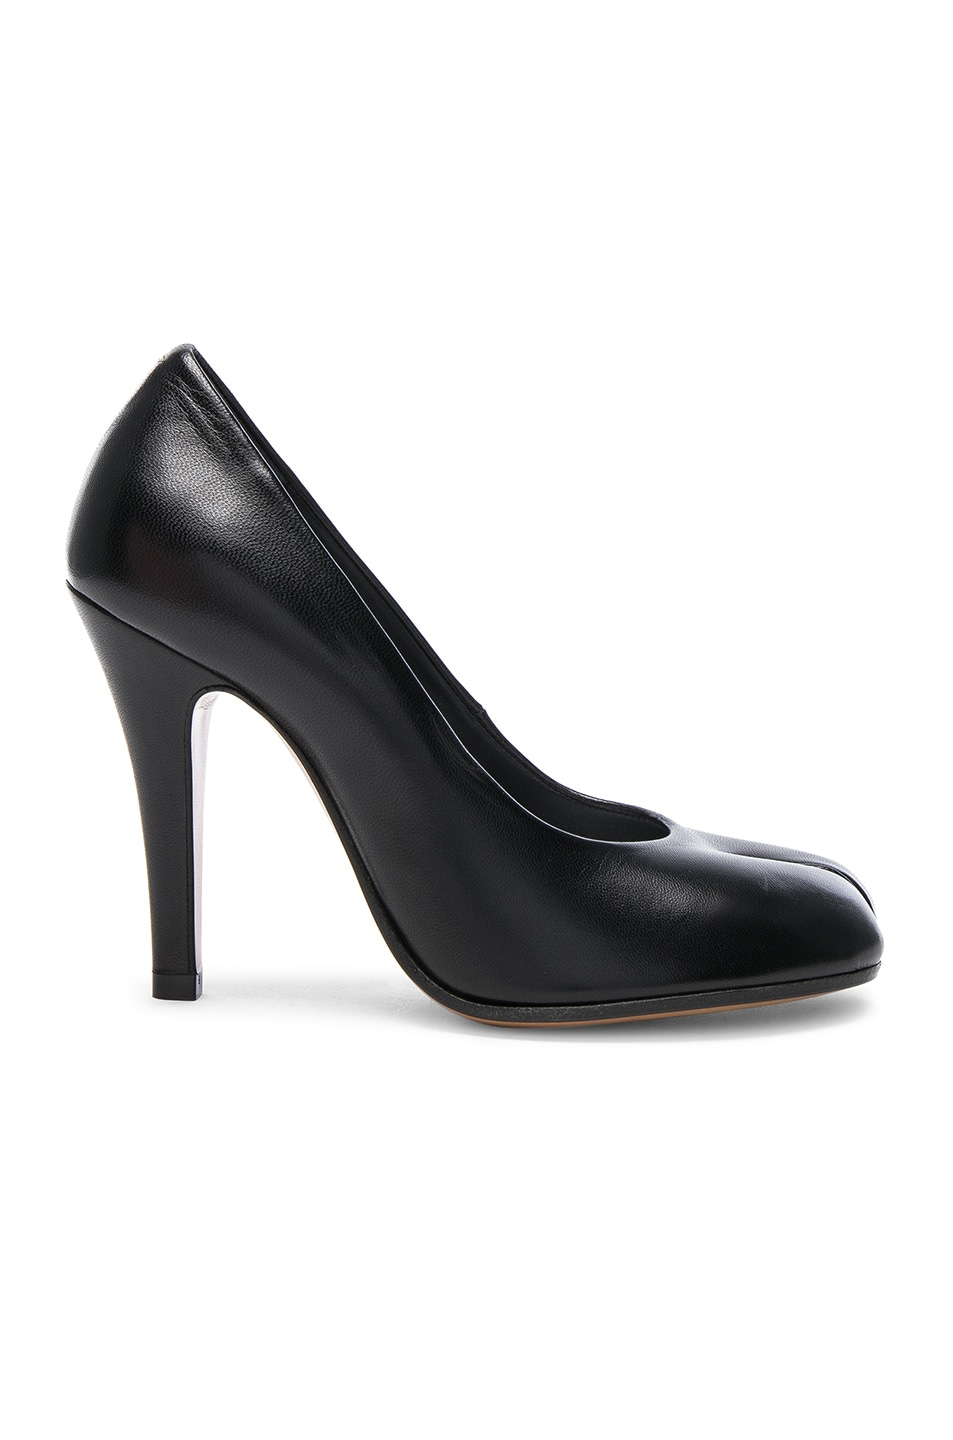 Image 1 of Maison Margiela Leather Tabi Heels in Black